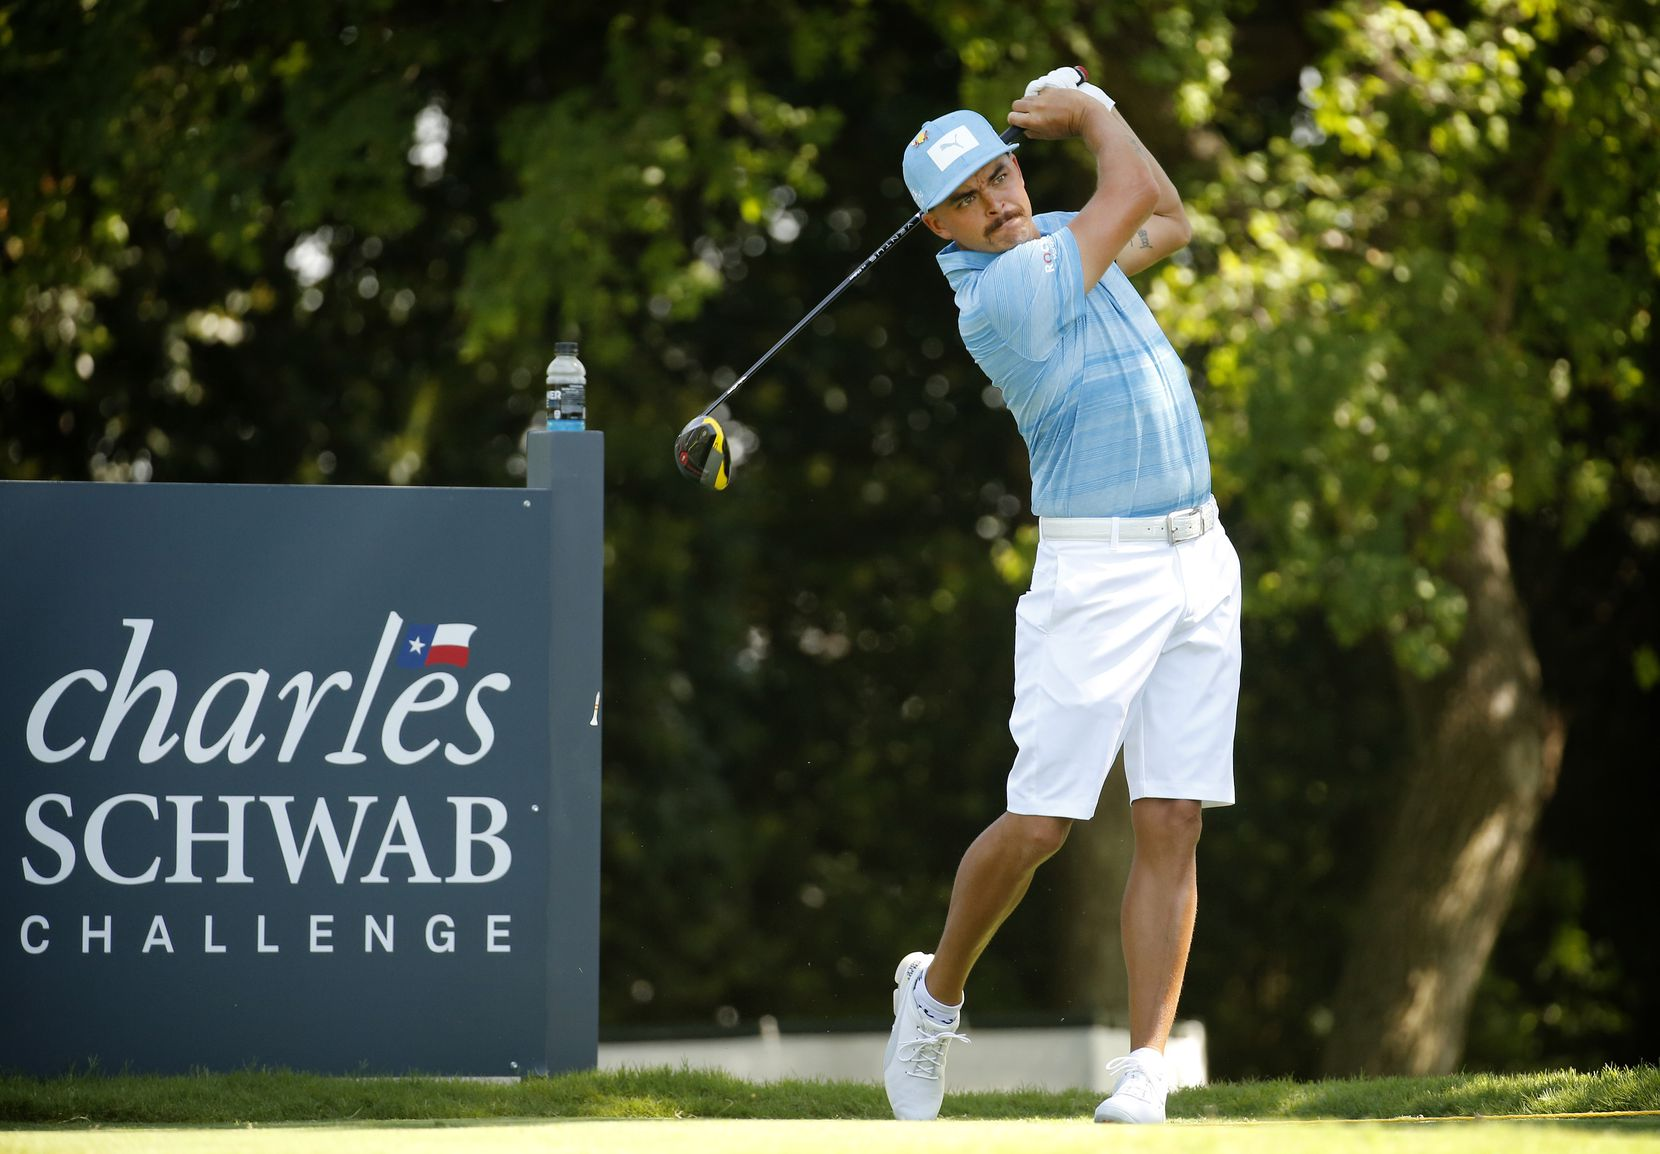 PGA golfer Rickie Fowler tees off on No. 9 during the Charles Schwab Challenge practice round at the Colonial Country Club in Fort Worth, Texas on Tuesday, June 9, 2020. The Challenge is the first tour event since the COVID-19 pandemic began.